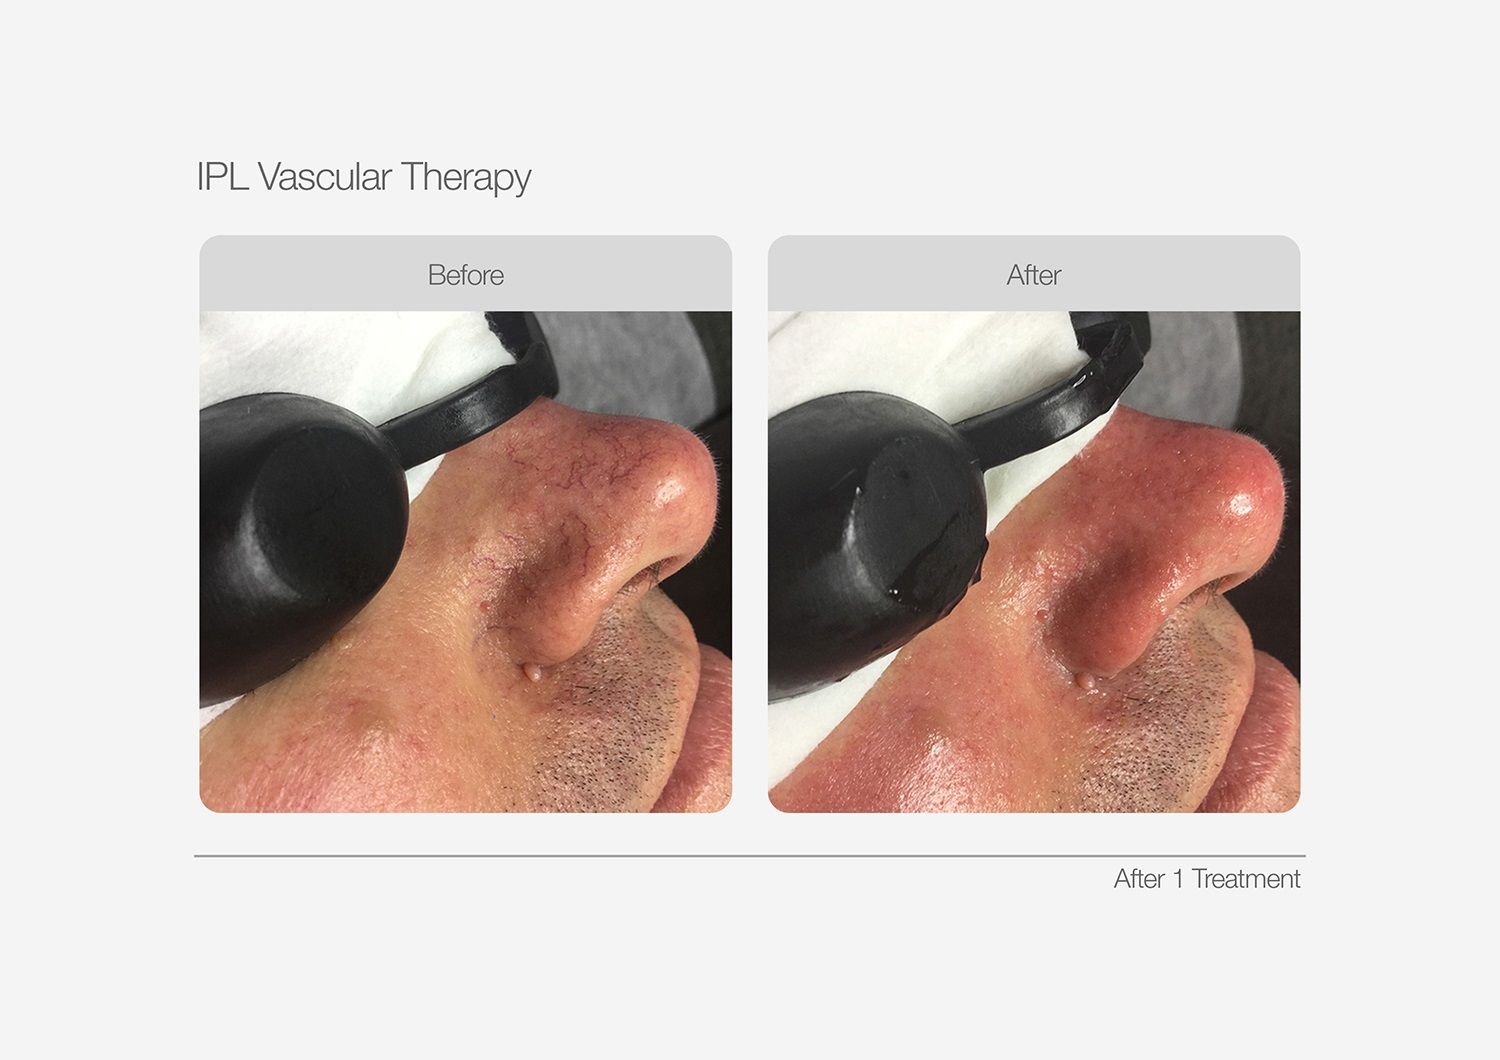 IPL-Vascular-Therapy-Before-After-01